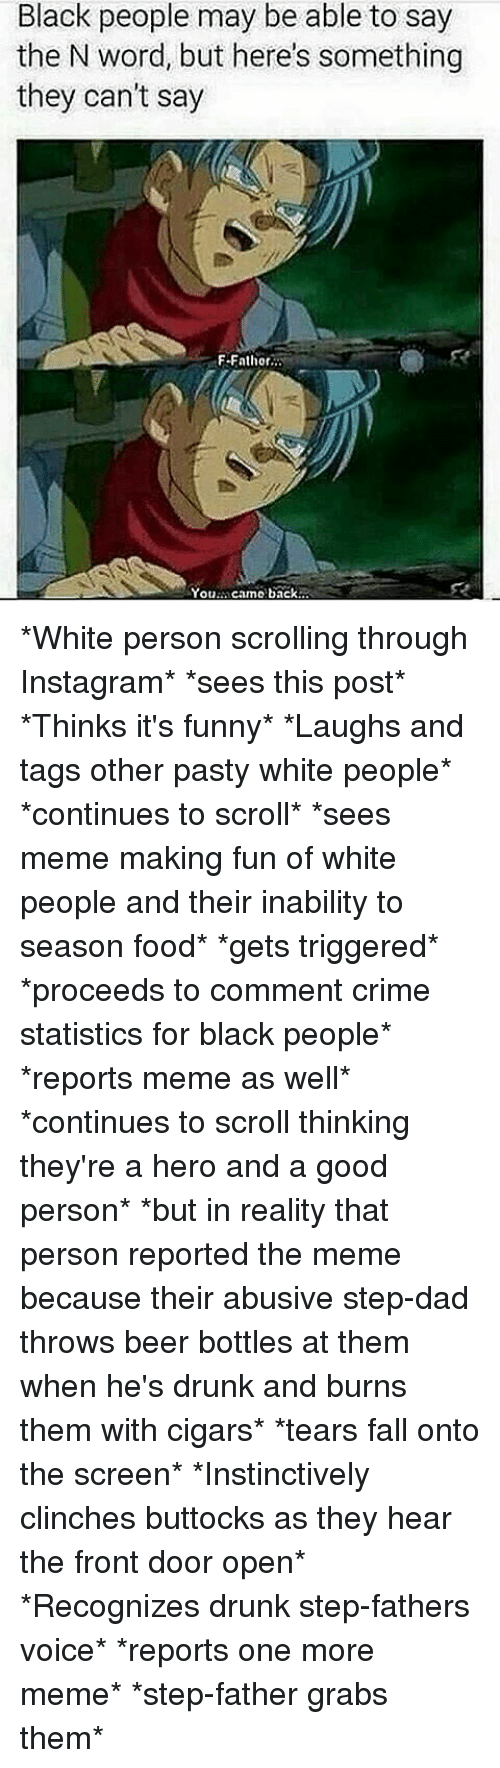 Beer, Crime, and Drunk: Black people may be able to say  the N word, but here's something  they can't say  F.Fathor  You  camo back *White person scrolling through Instagram* *sees this post* *Thinks it's funny* *Laughs and tags other pasty white people* *continues to scroll* *sees meme making fun of white people and their inability to season food* *gets triggered* *proceeds to comment crime statistics for black people* *reports meme as well* *continues to scroll thinking they're a hero and a good person* *but in reality that person reported the meme because their abusive step-dad throws beer bottles at them when he's drunk and burns them with cigars* *tears fall onto the screen* *Instinctively clinches buttocks as they hear the front door open* *Recognizes drunk step-fathers voice* *reports one more meme* *step-father grabs them*